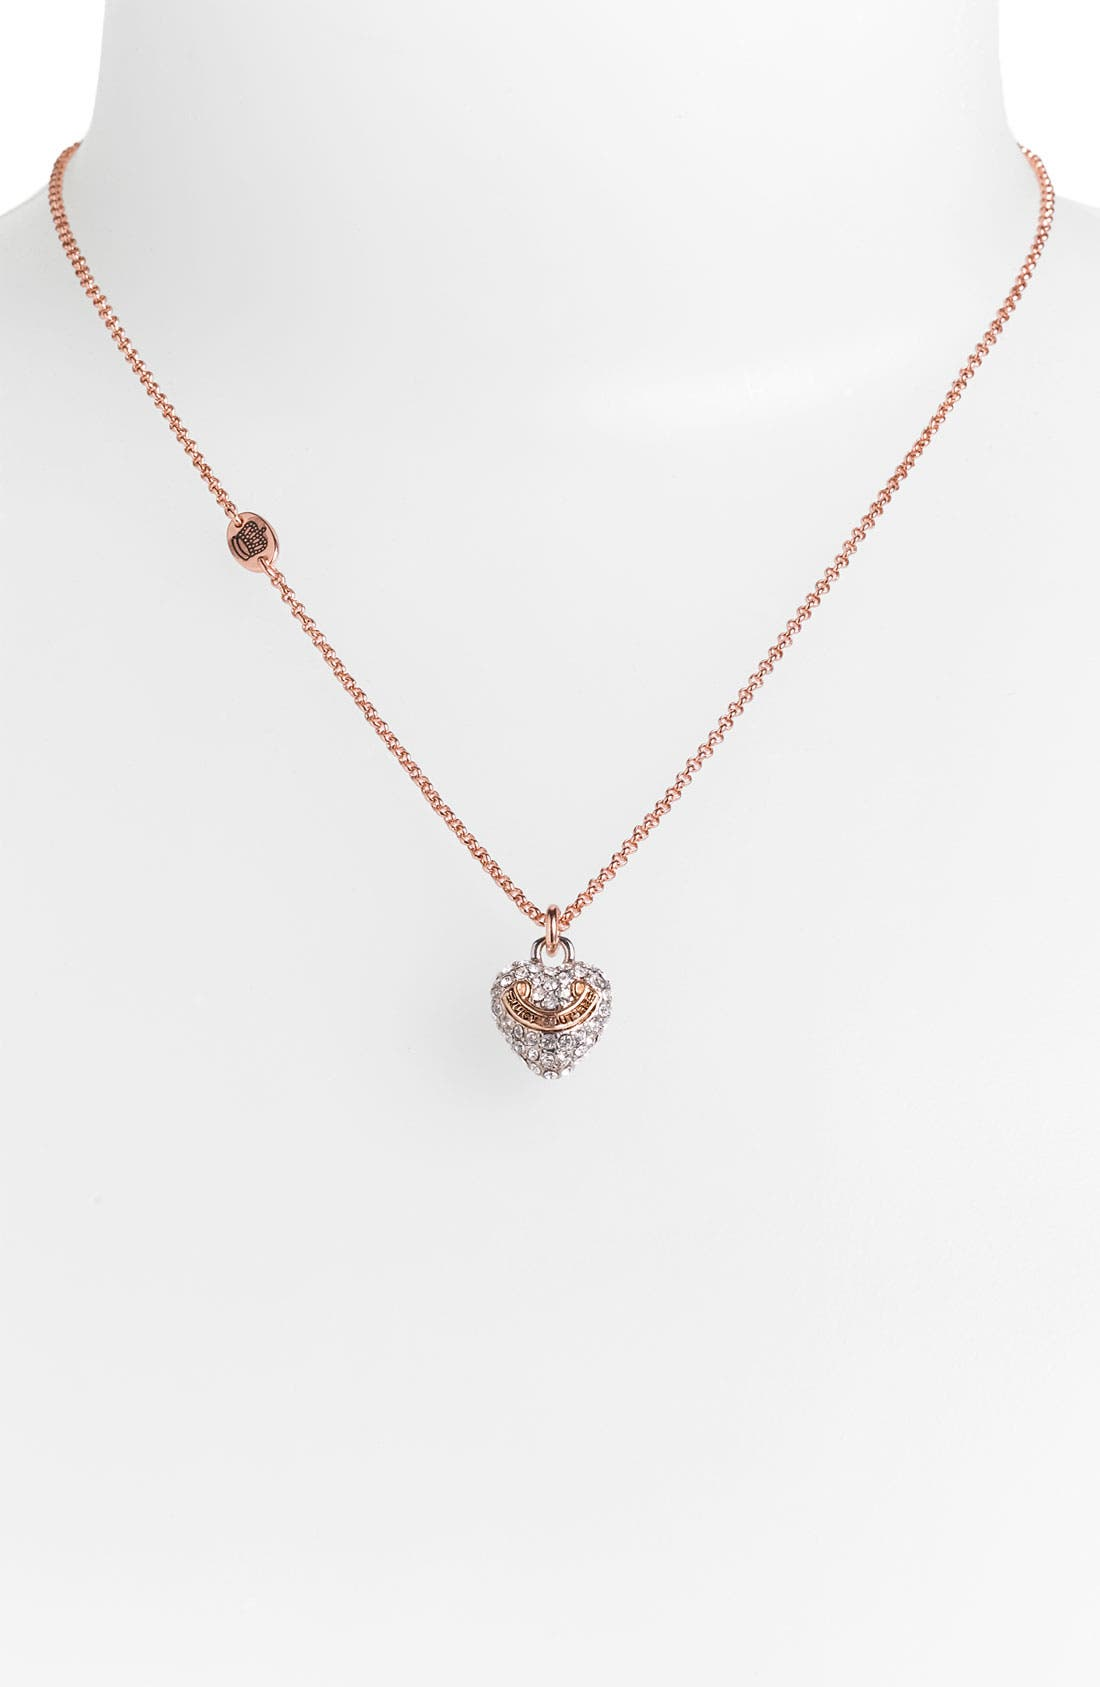 Main Image - Juicy Couture 'Wish - Pavé Heart' Necklace